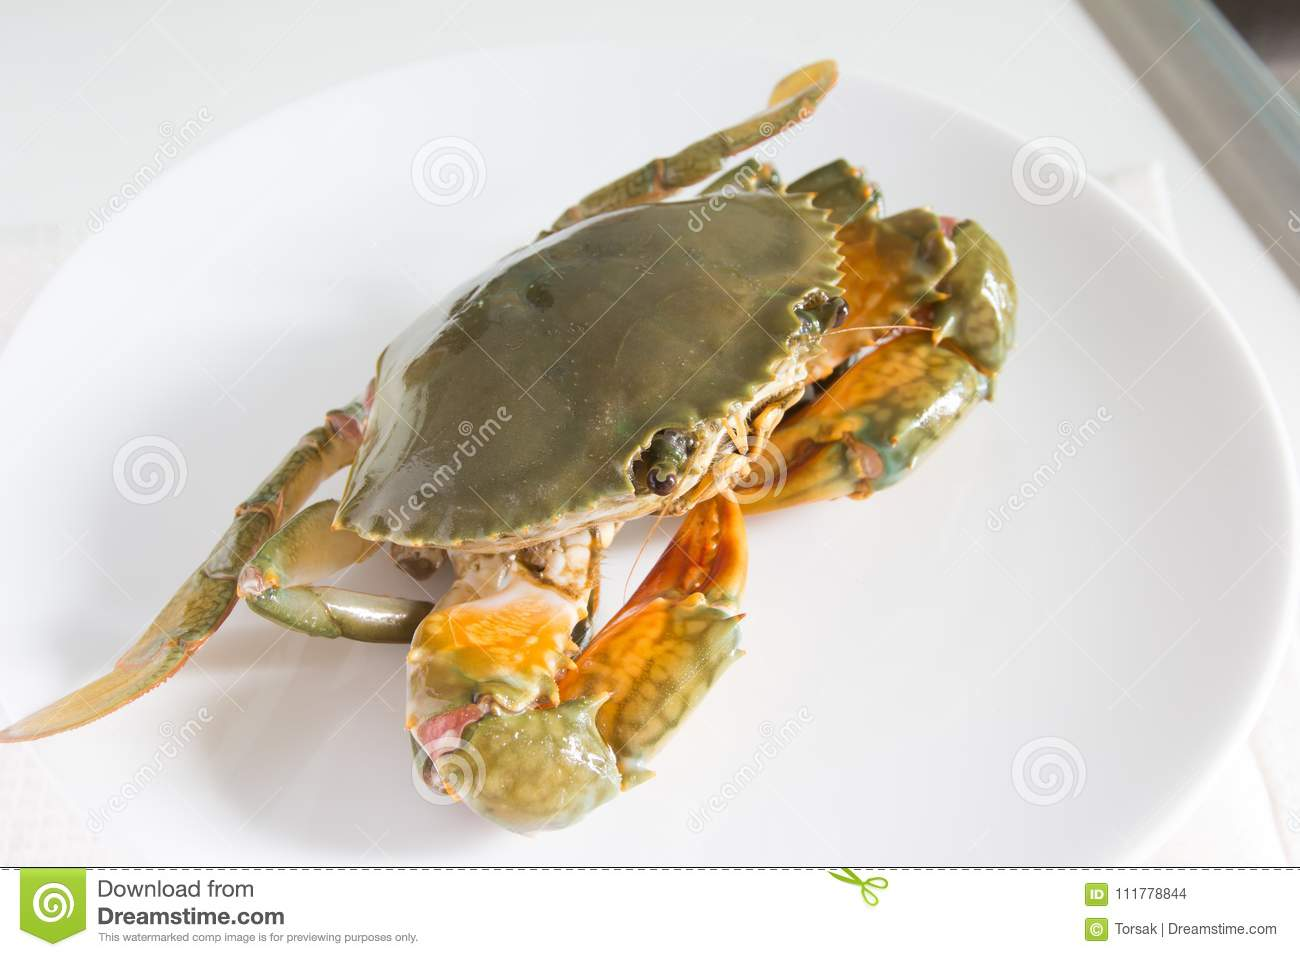 Crab on plate